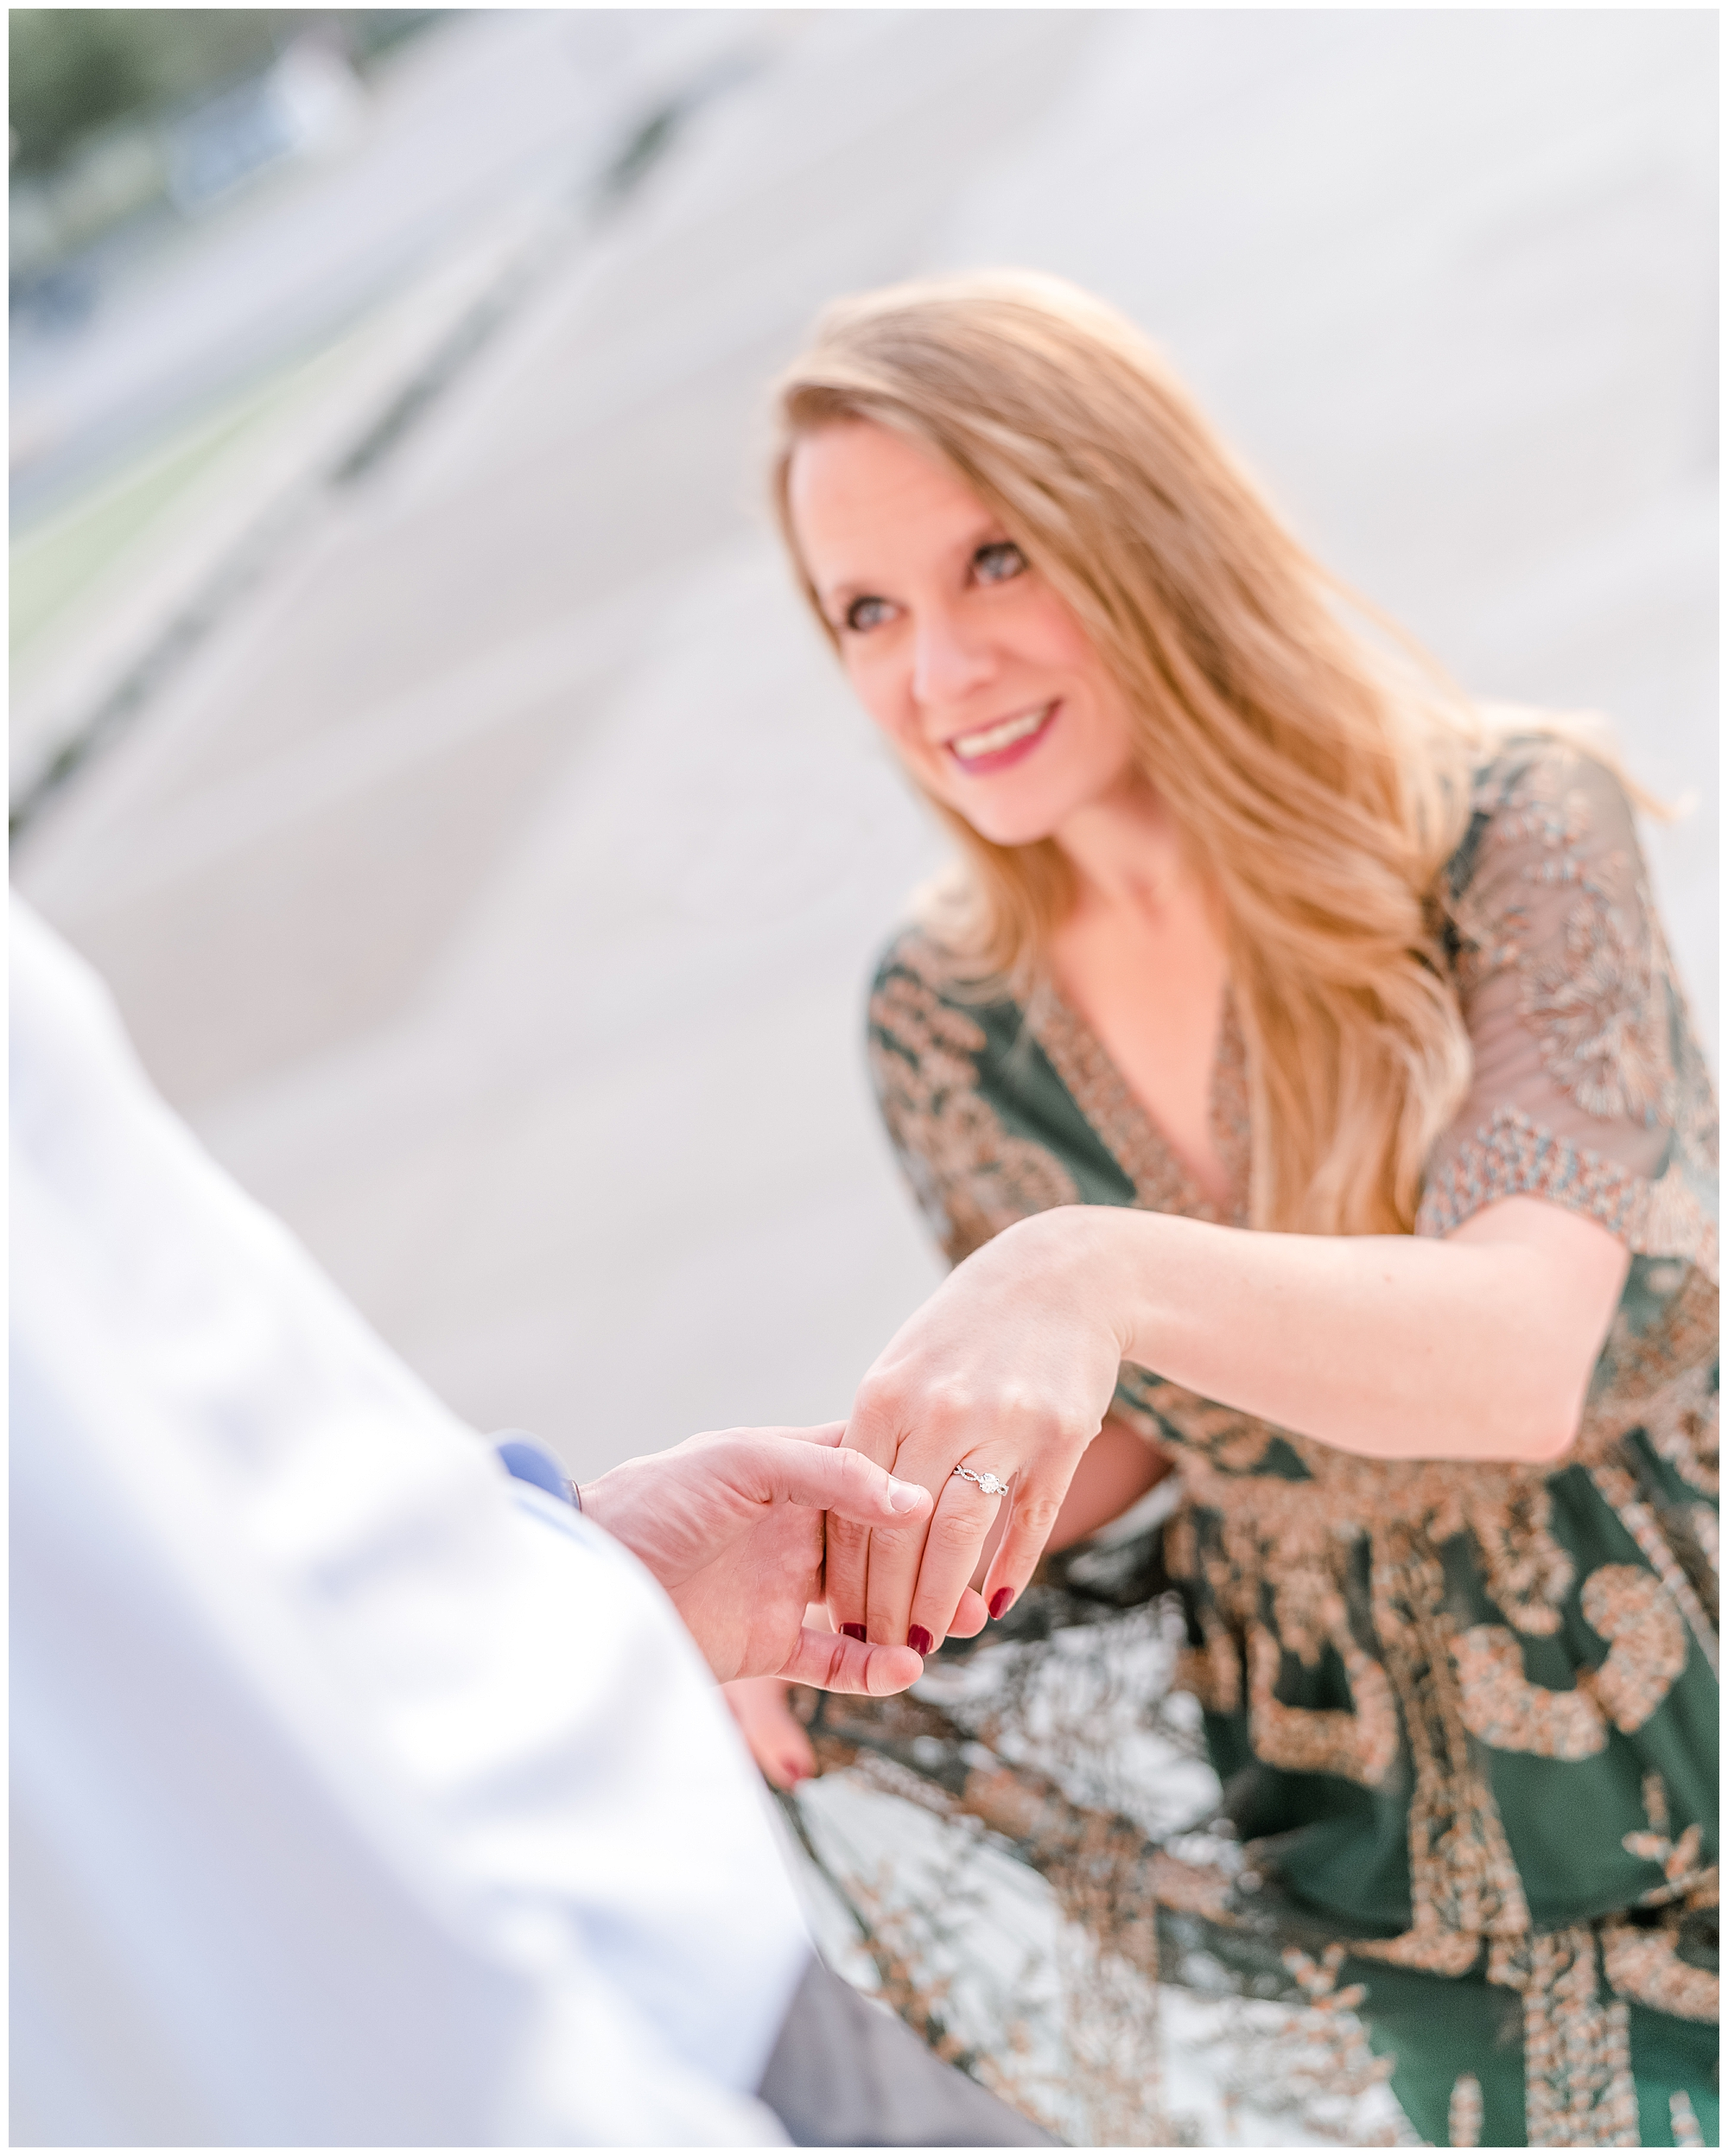 Engaged woman wearing a green dress smiles up at her fiancé while holding his hand during an engagement session.